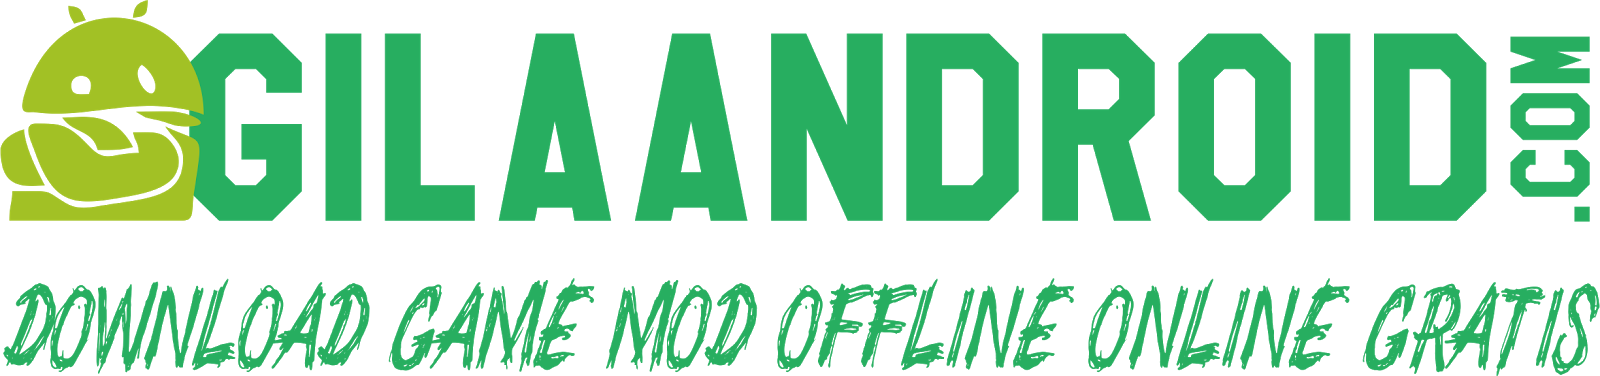 GILAANDROID.COM- Download Game Mod Offline Terbaru